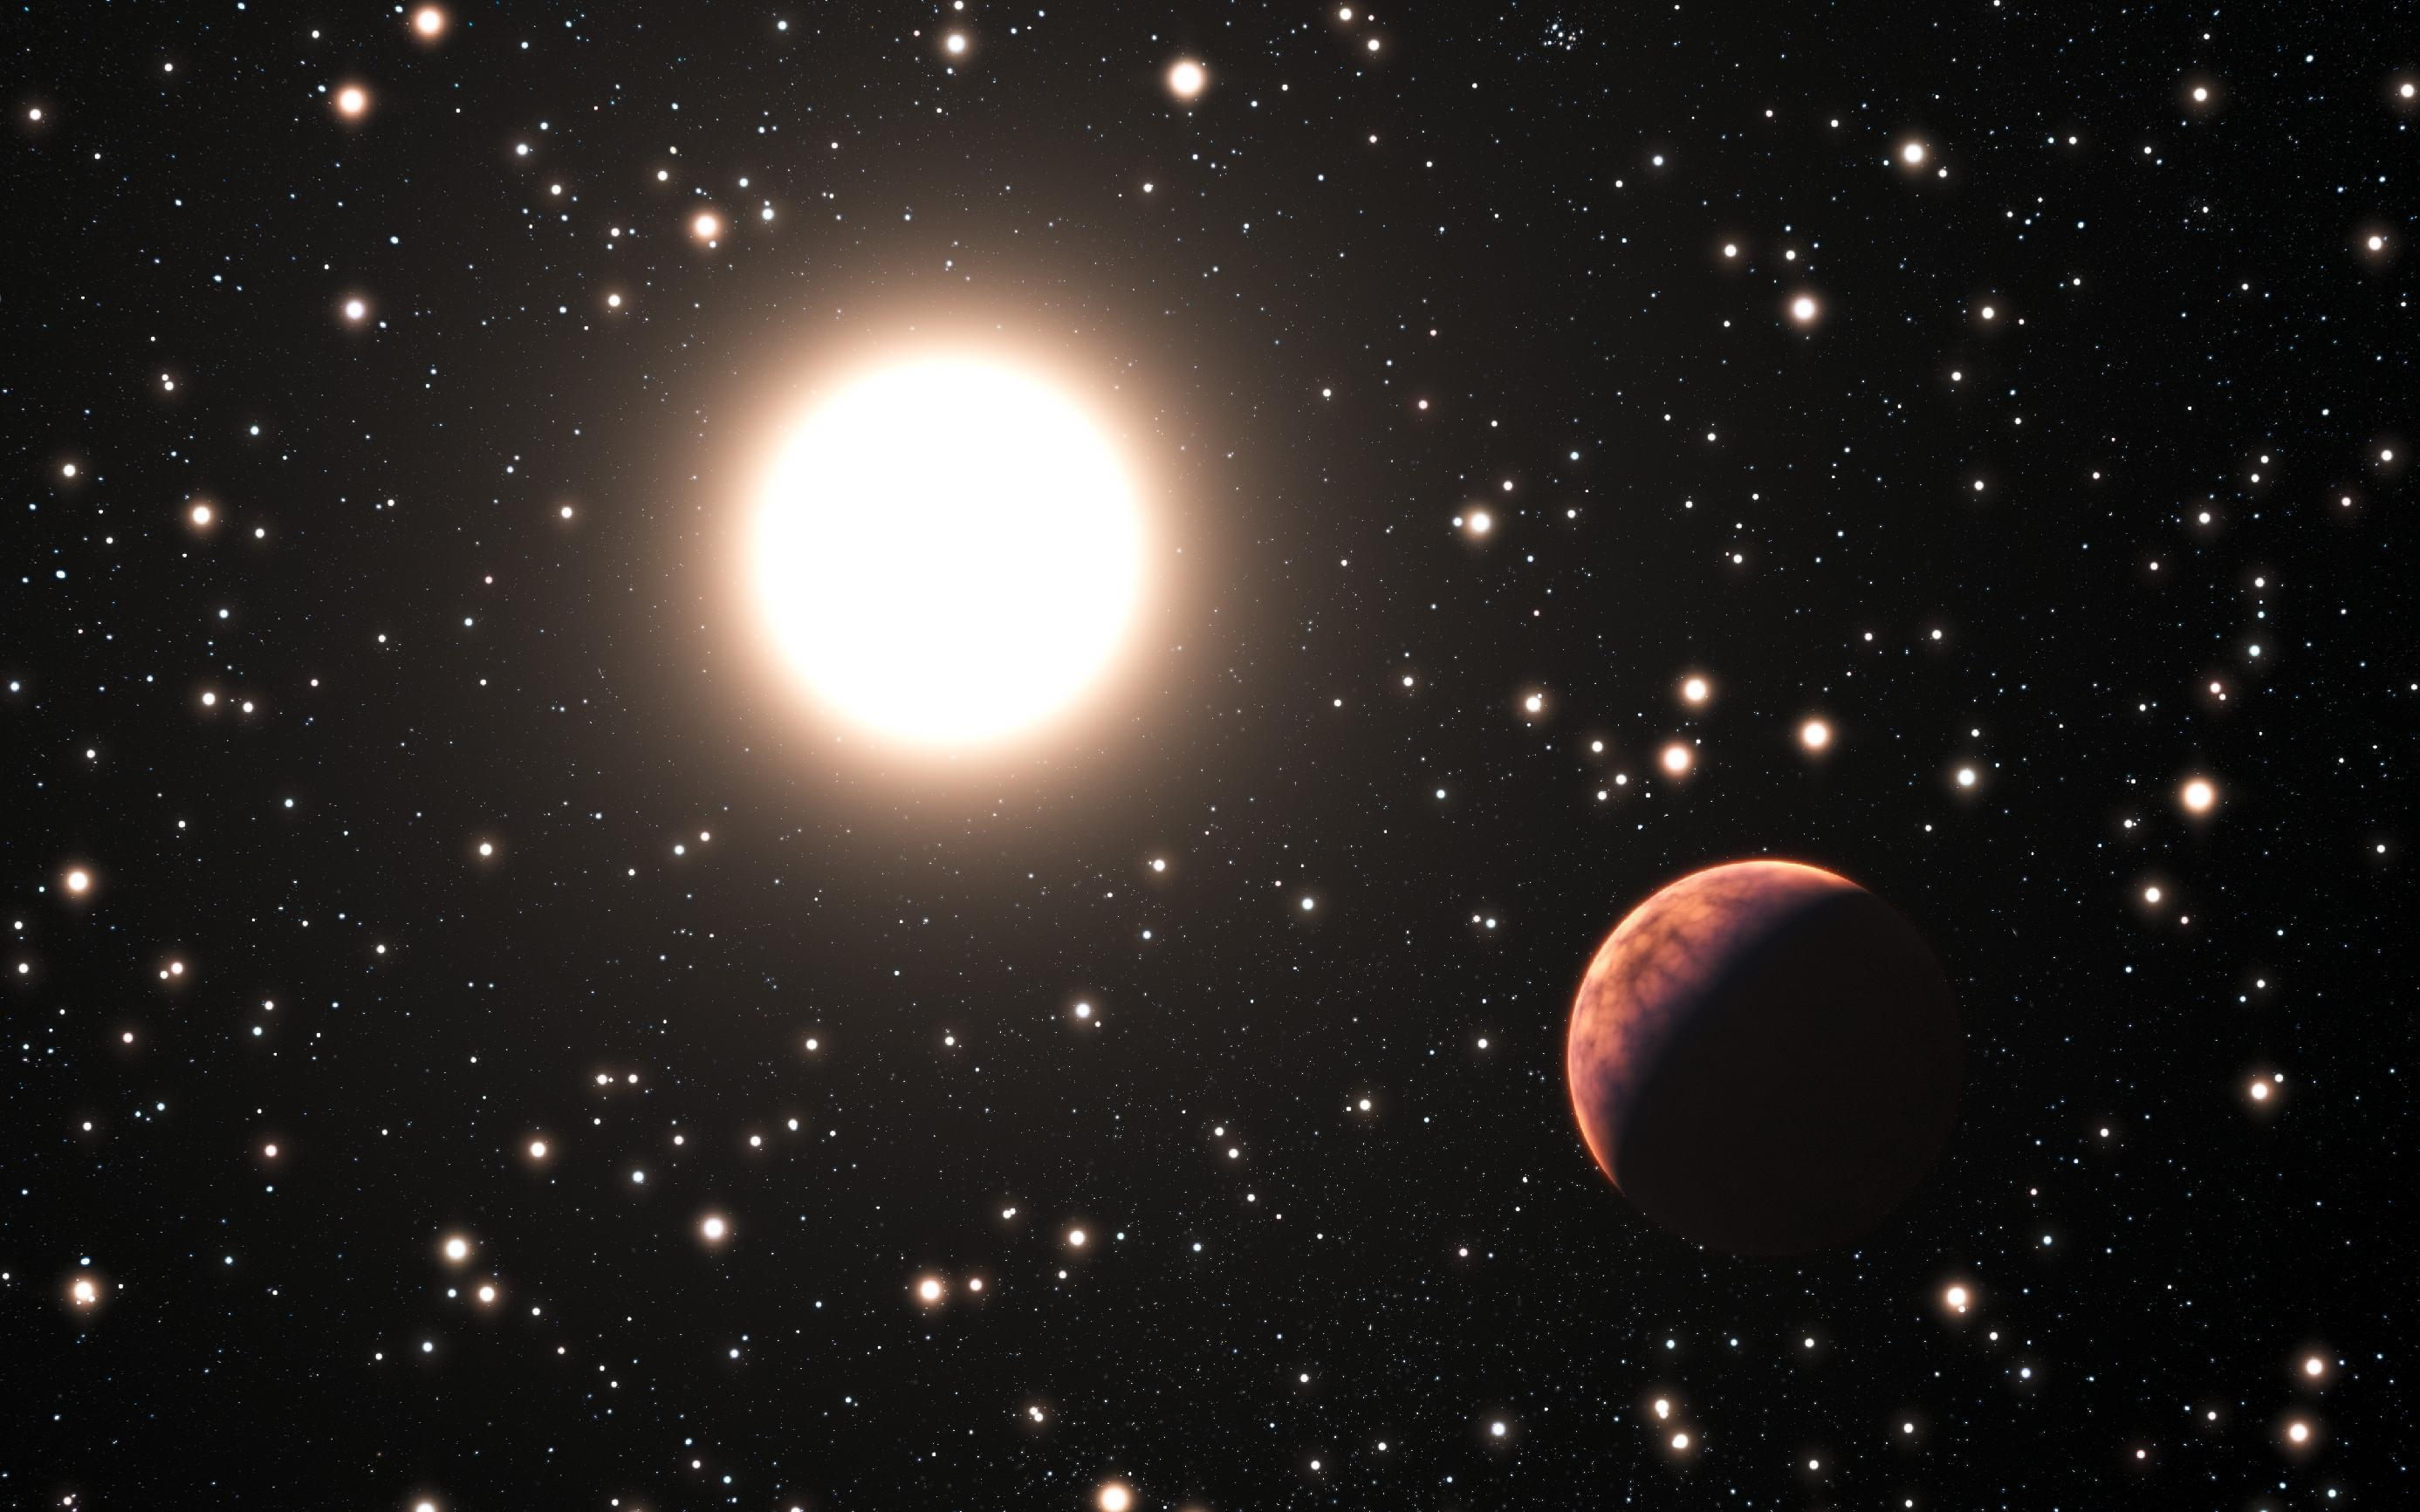 quadruple star system with planets - photo #24